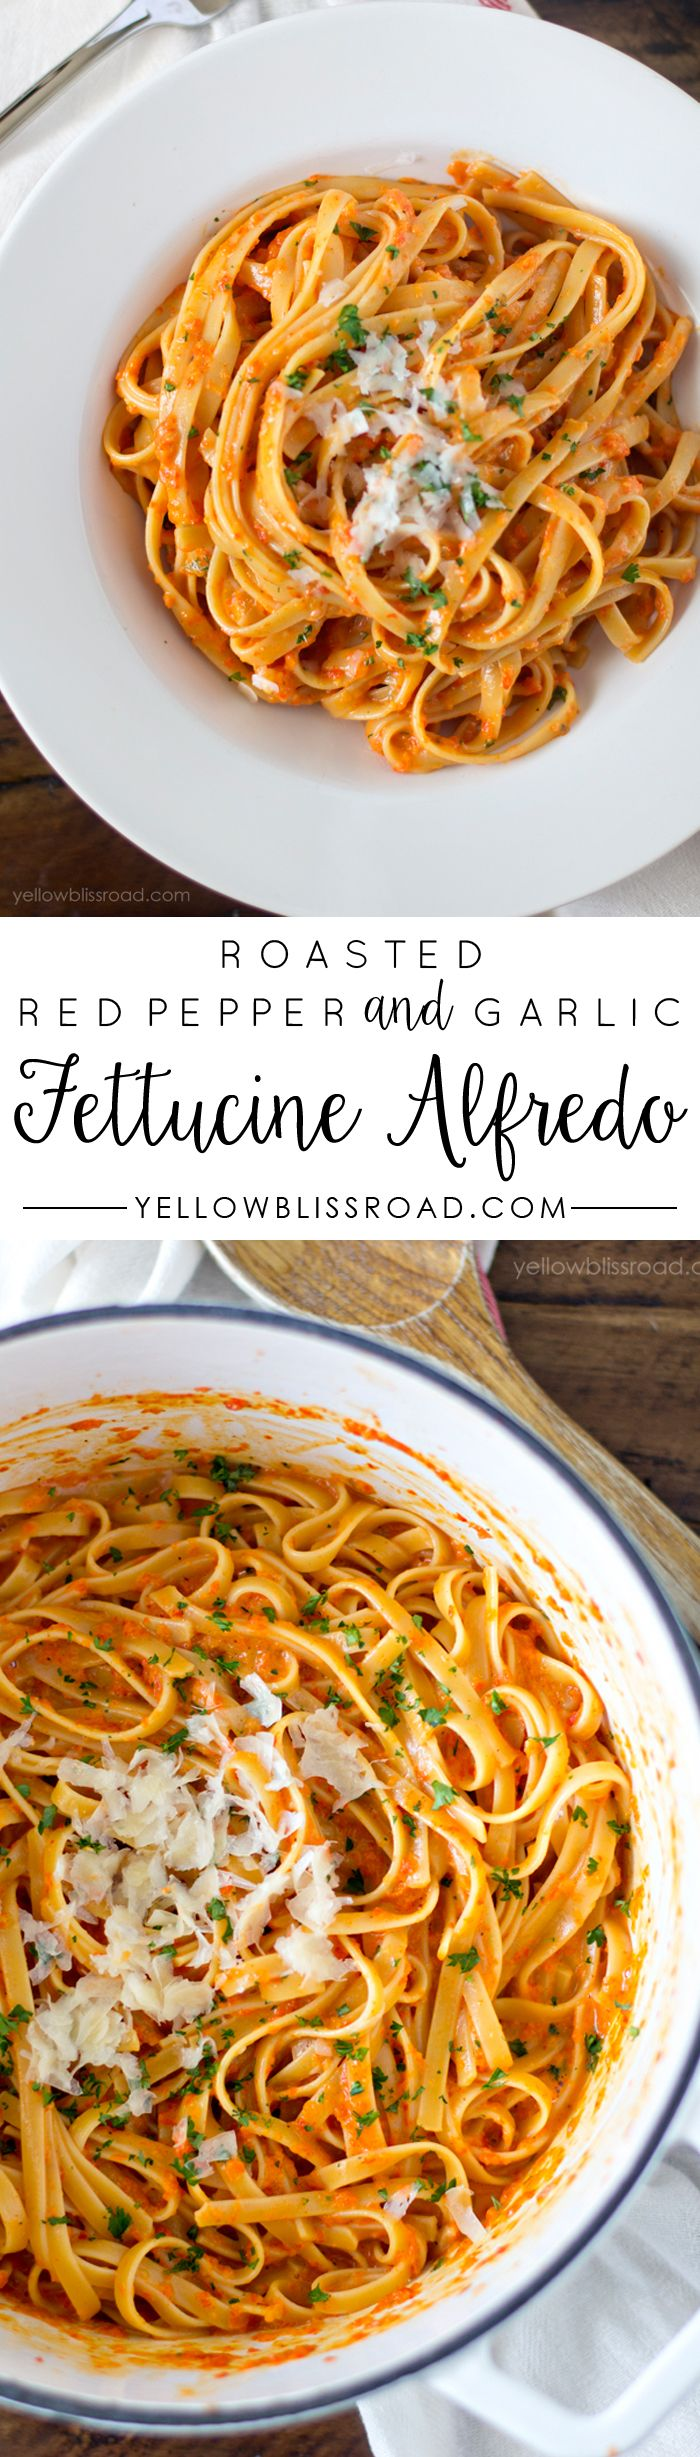 Roasted Red Pepper and Garlic Fettucine Alfredo